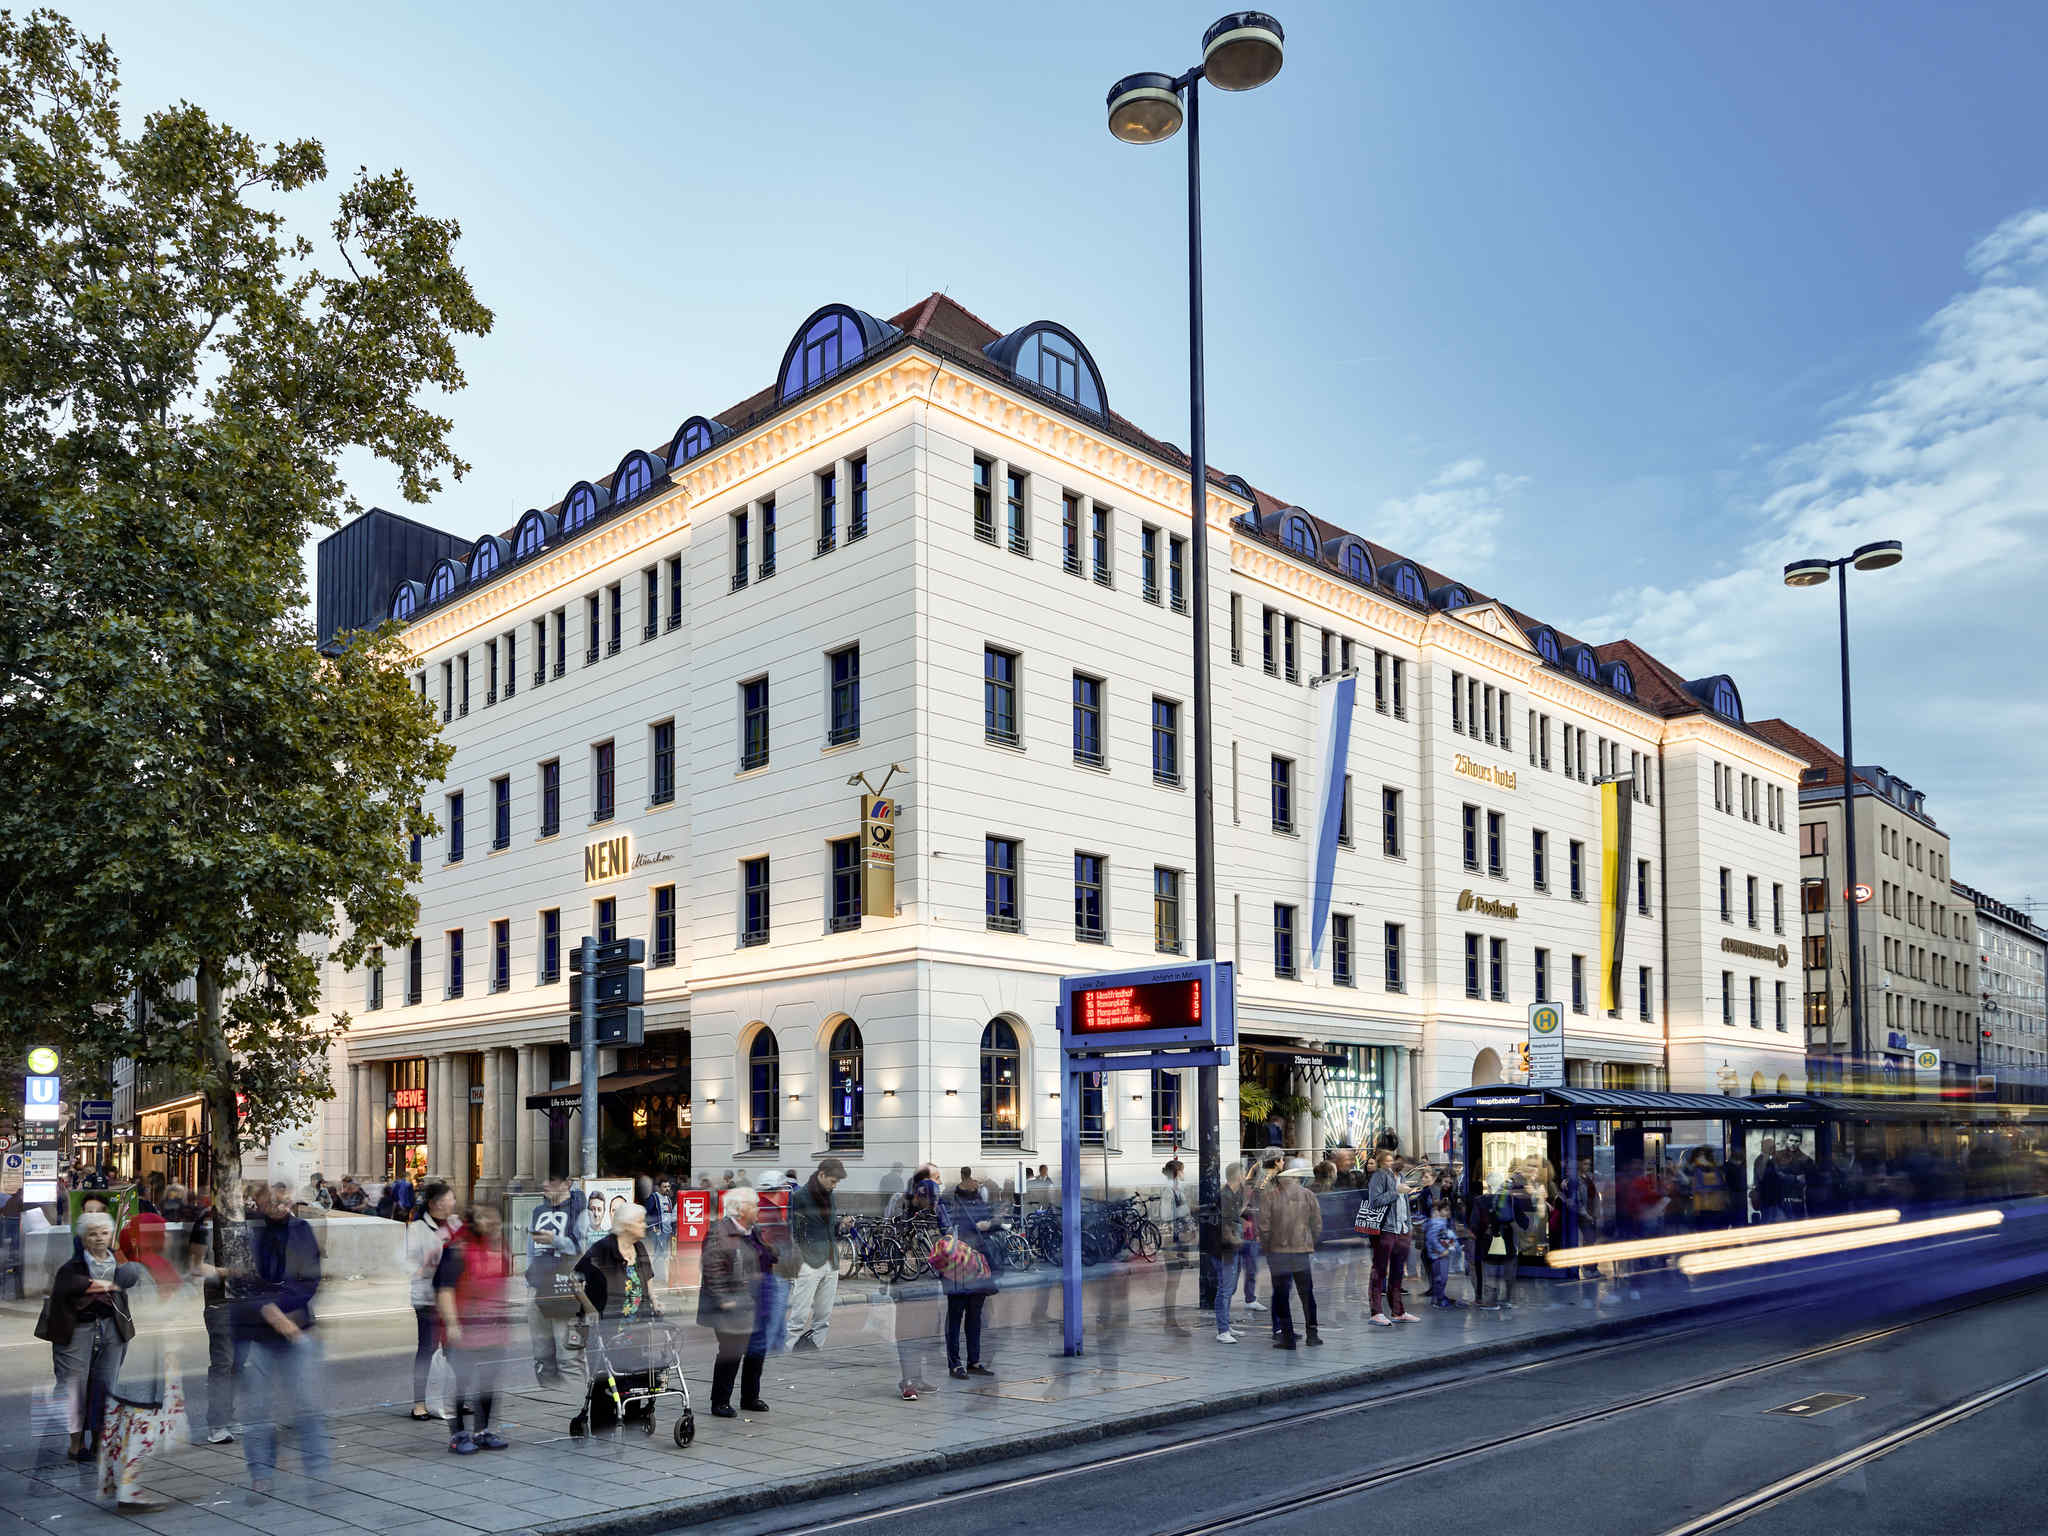 Hotel – 25hours Hotel Muenchen The Royal Bavarian